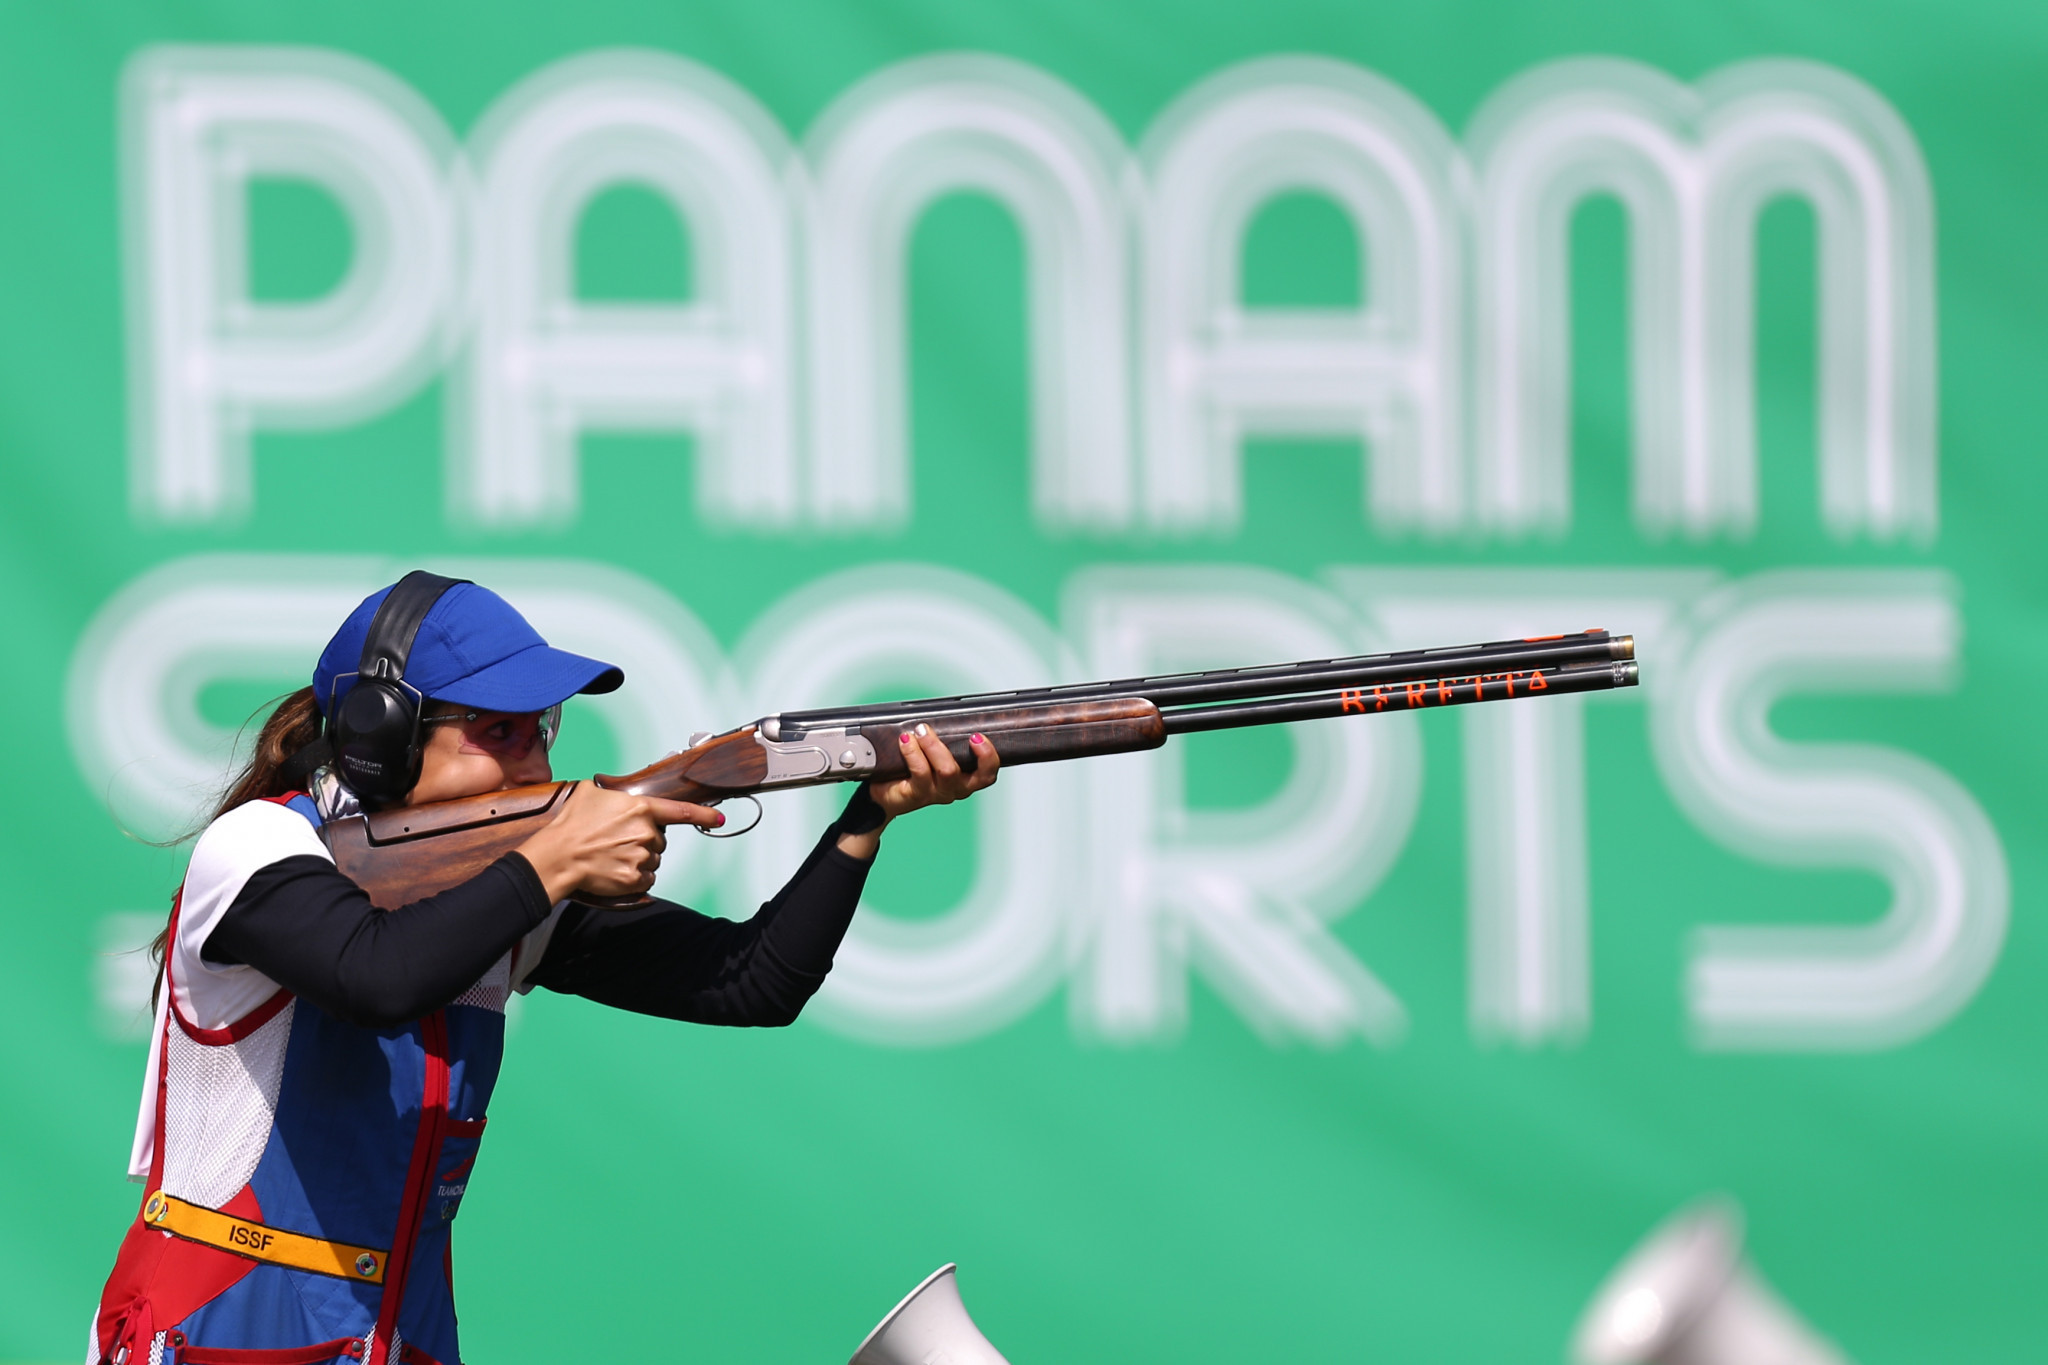 Chile's Francisca Crovetto Chadid, the silver medallist at the 2019 Pan American Games in Peru's capital Lima earlier this month, occupies second spot ©Getty Images